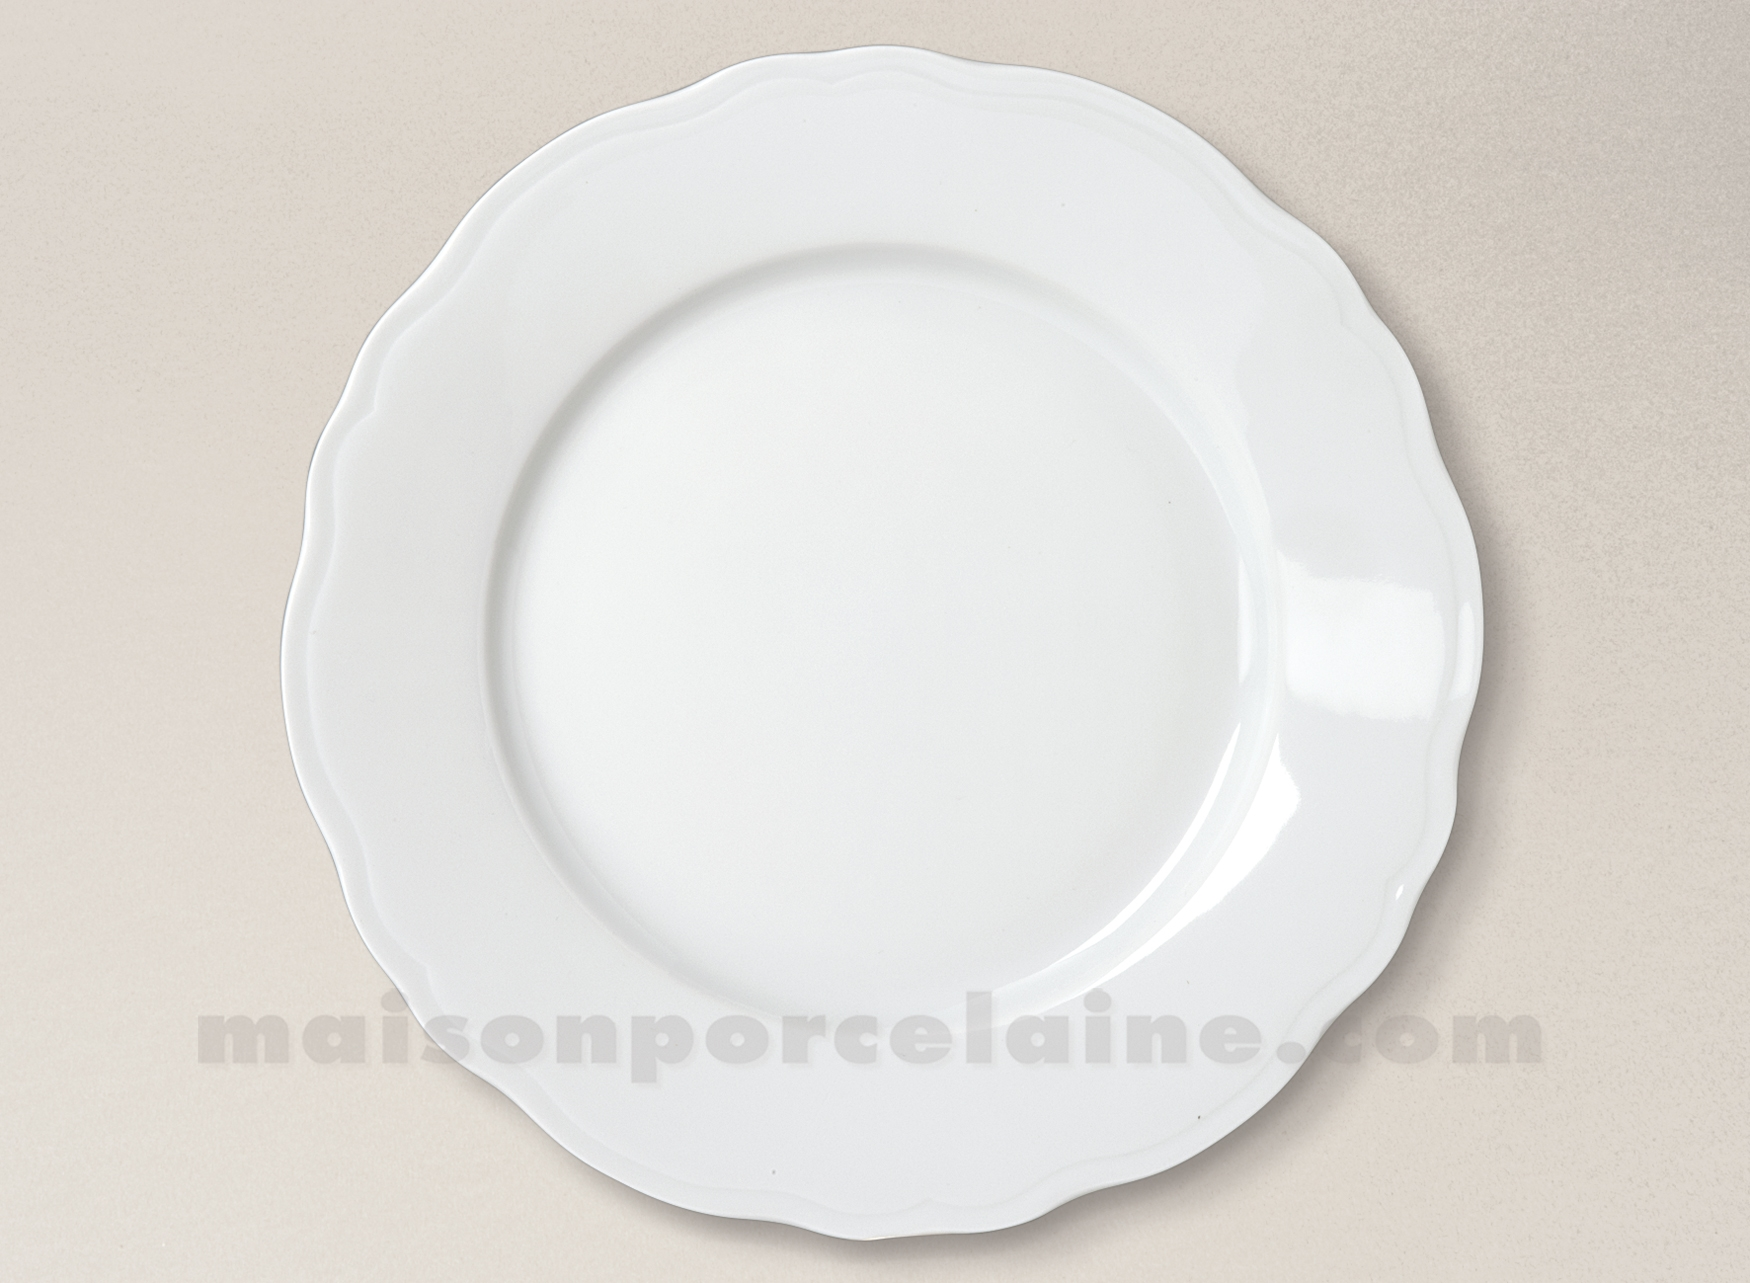 assiette plate limoges porcelaine blanche colbert d265. Black Bedroom Furniture Sets. Home Design Ideas